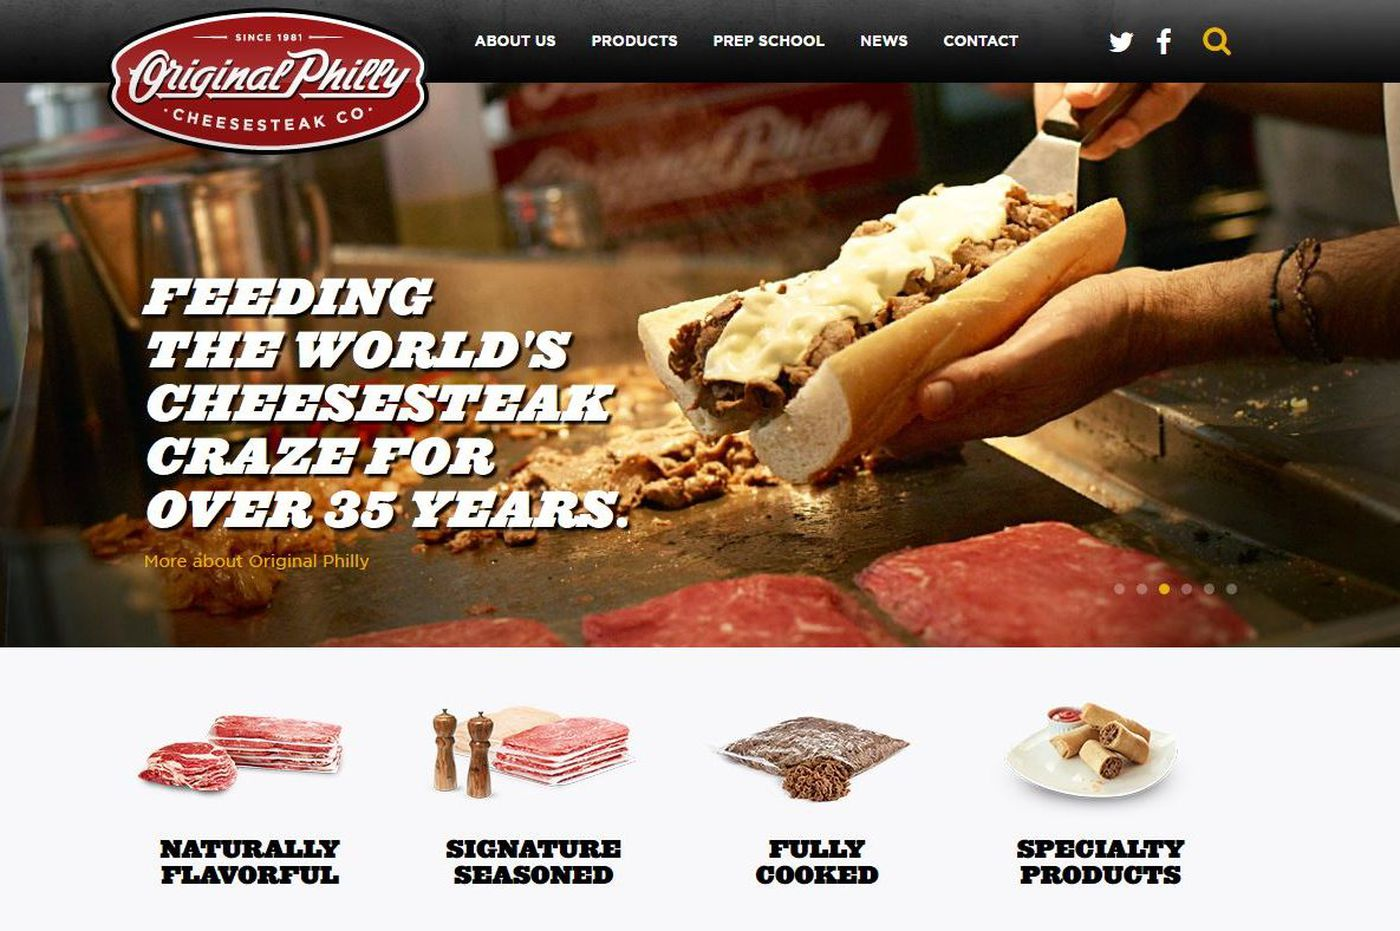 Original Philly Cheesesteak Co. sold to Tyson Foods